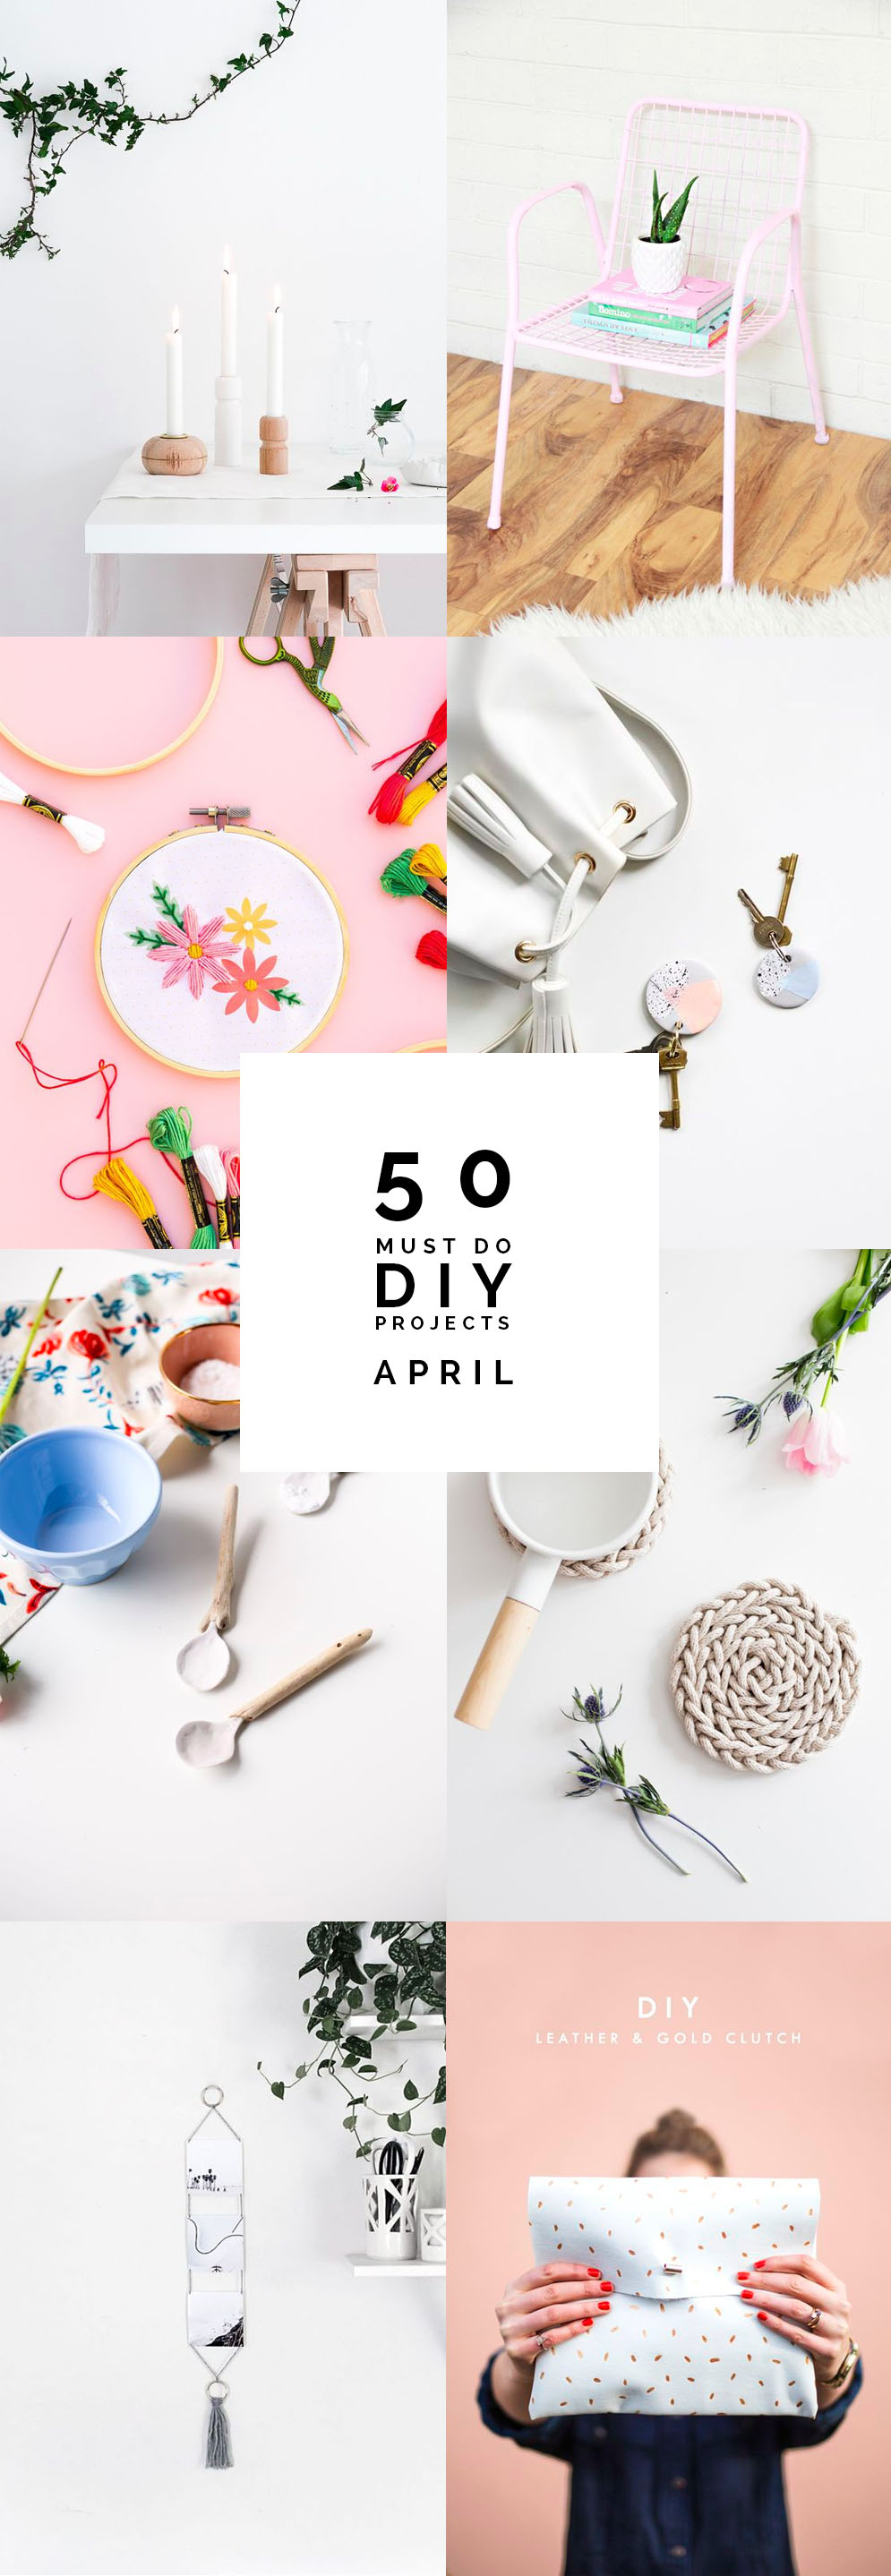 50 Must do DIY Projects for April | @fallfordiy